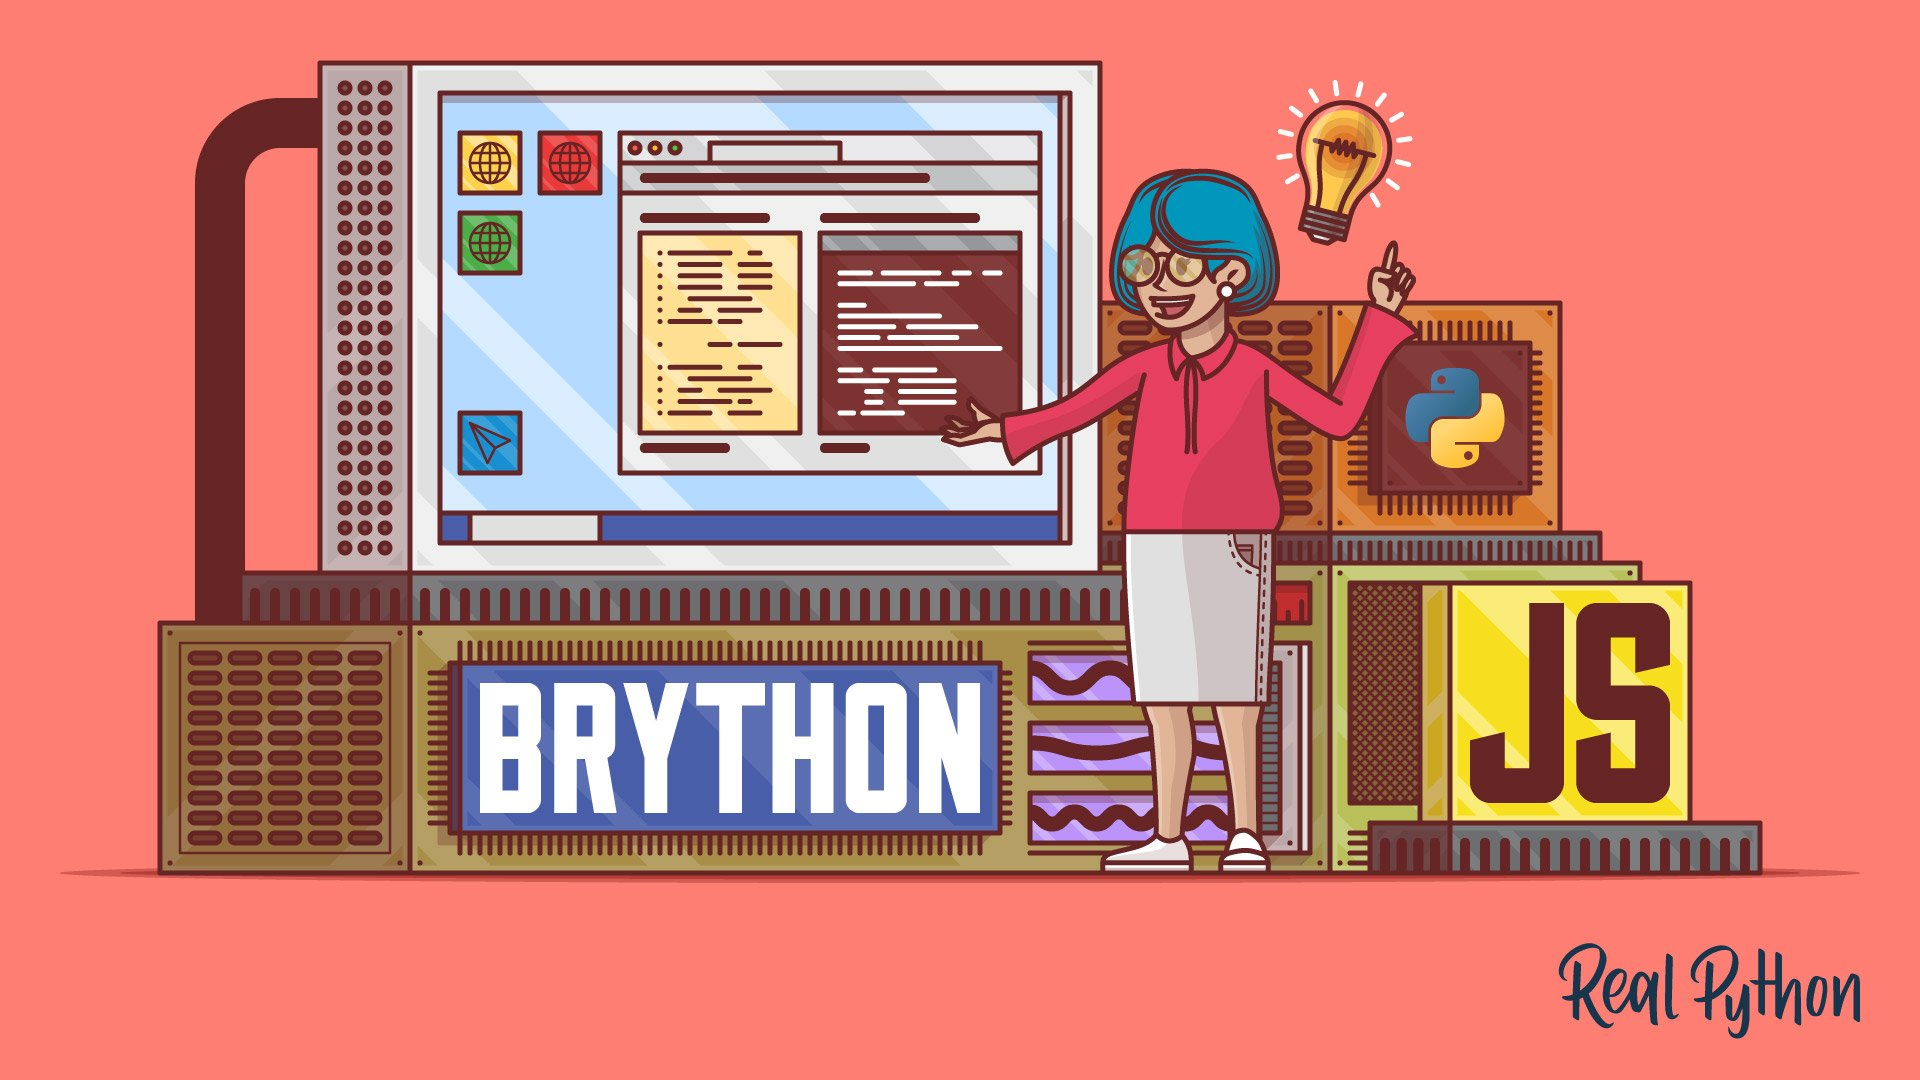 Brython: Python in Your Browser